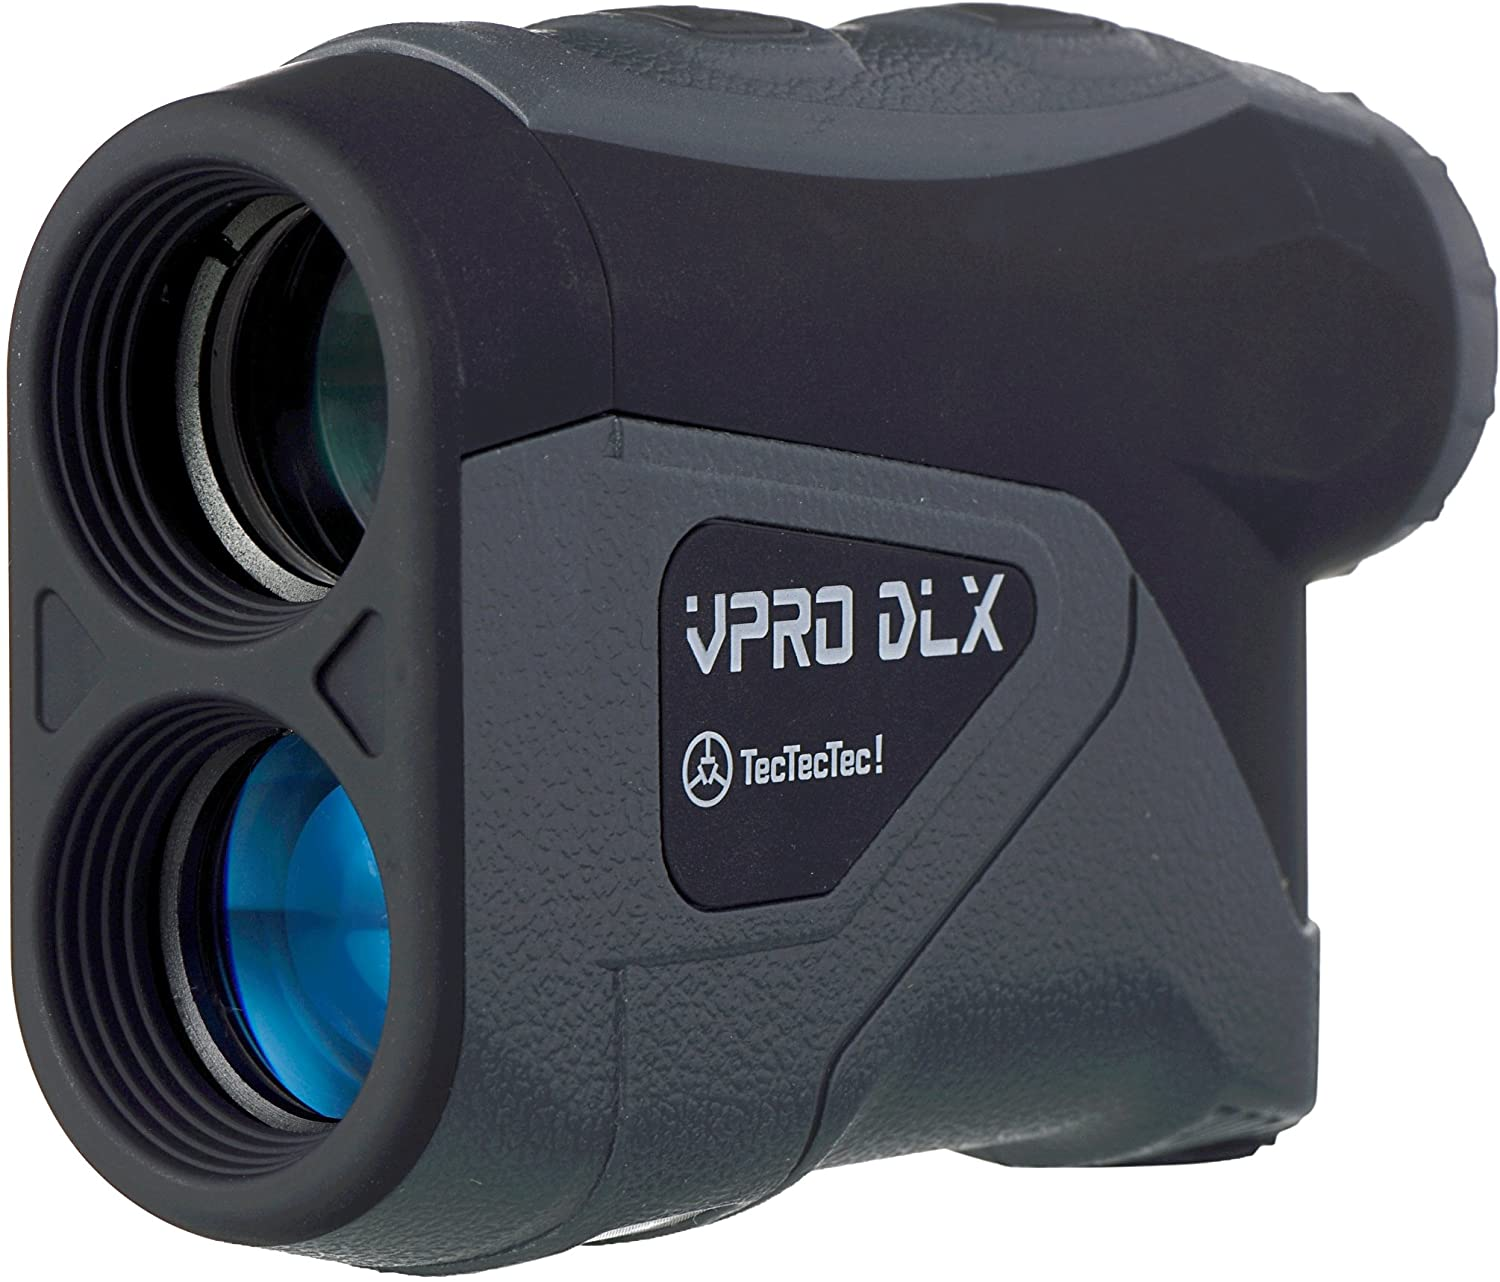 What is the Best Cheap Golf Rangefinder For You?